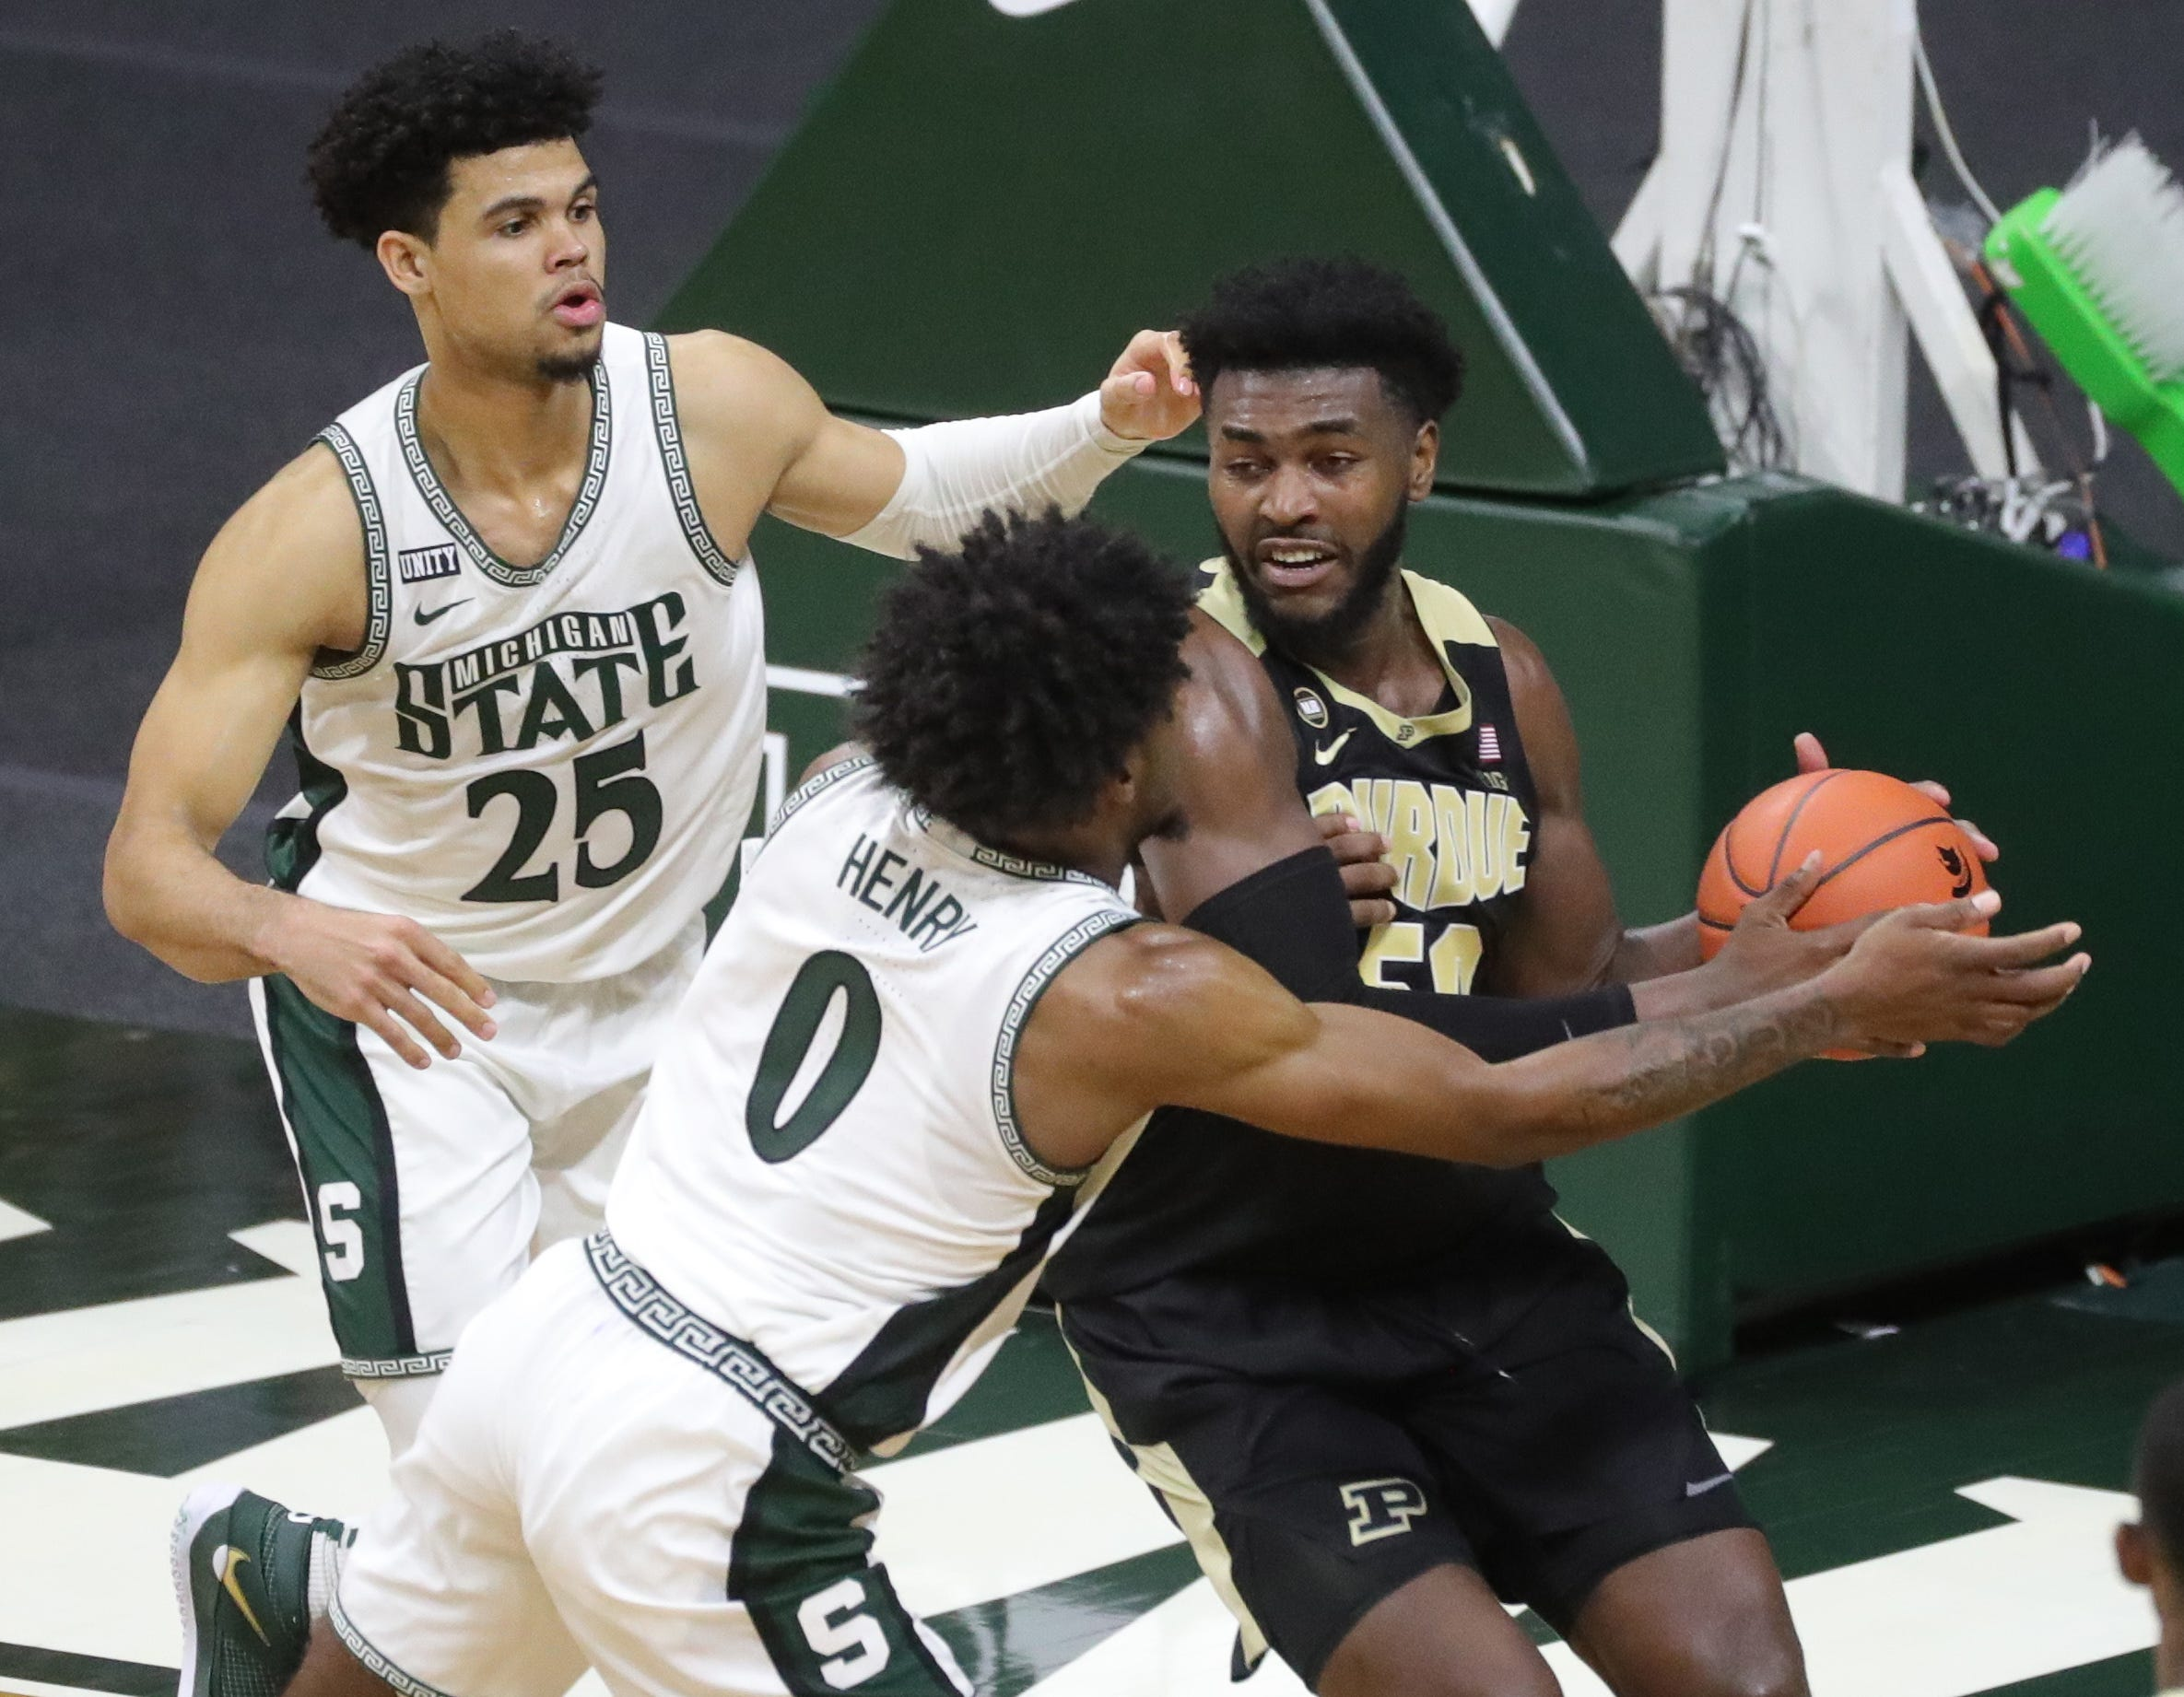 Michigan State Spartans striker Malik Hall (25) and Aaron Henry defend Purdue Boilermakers striker Trevion Williams during the second half at Priceline Center in East Lansing, Friday, Jan.8, 2021.